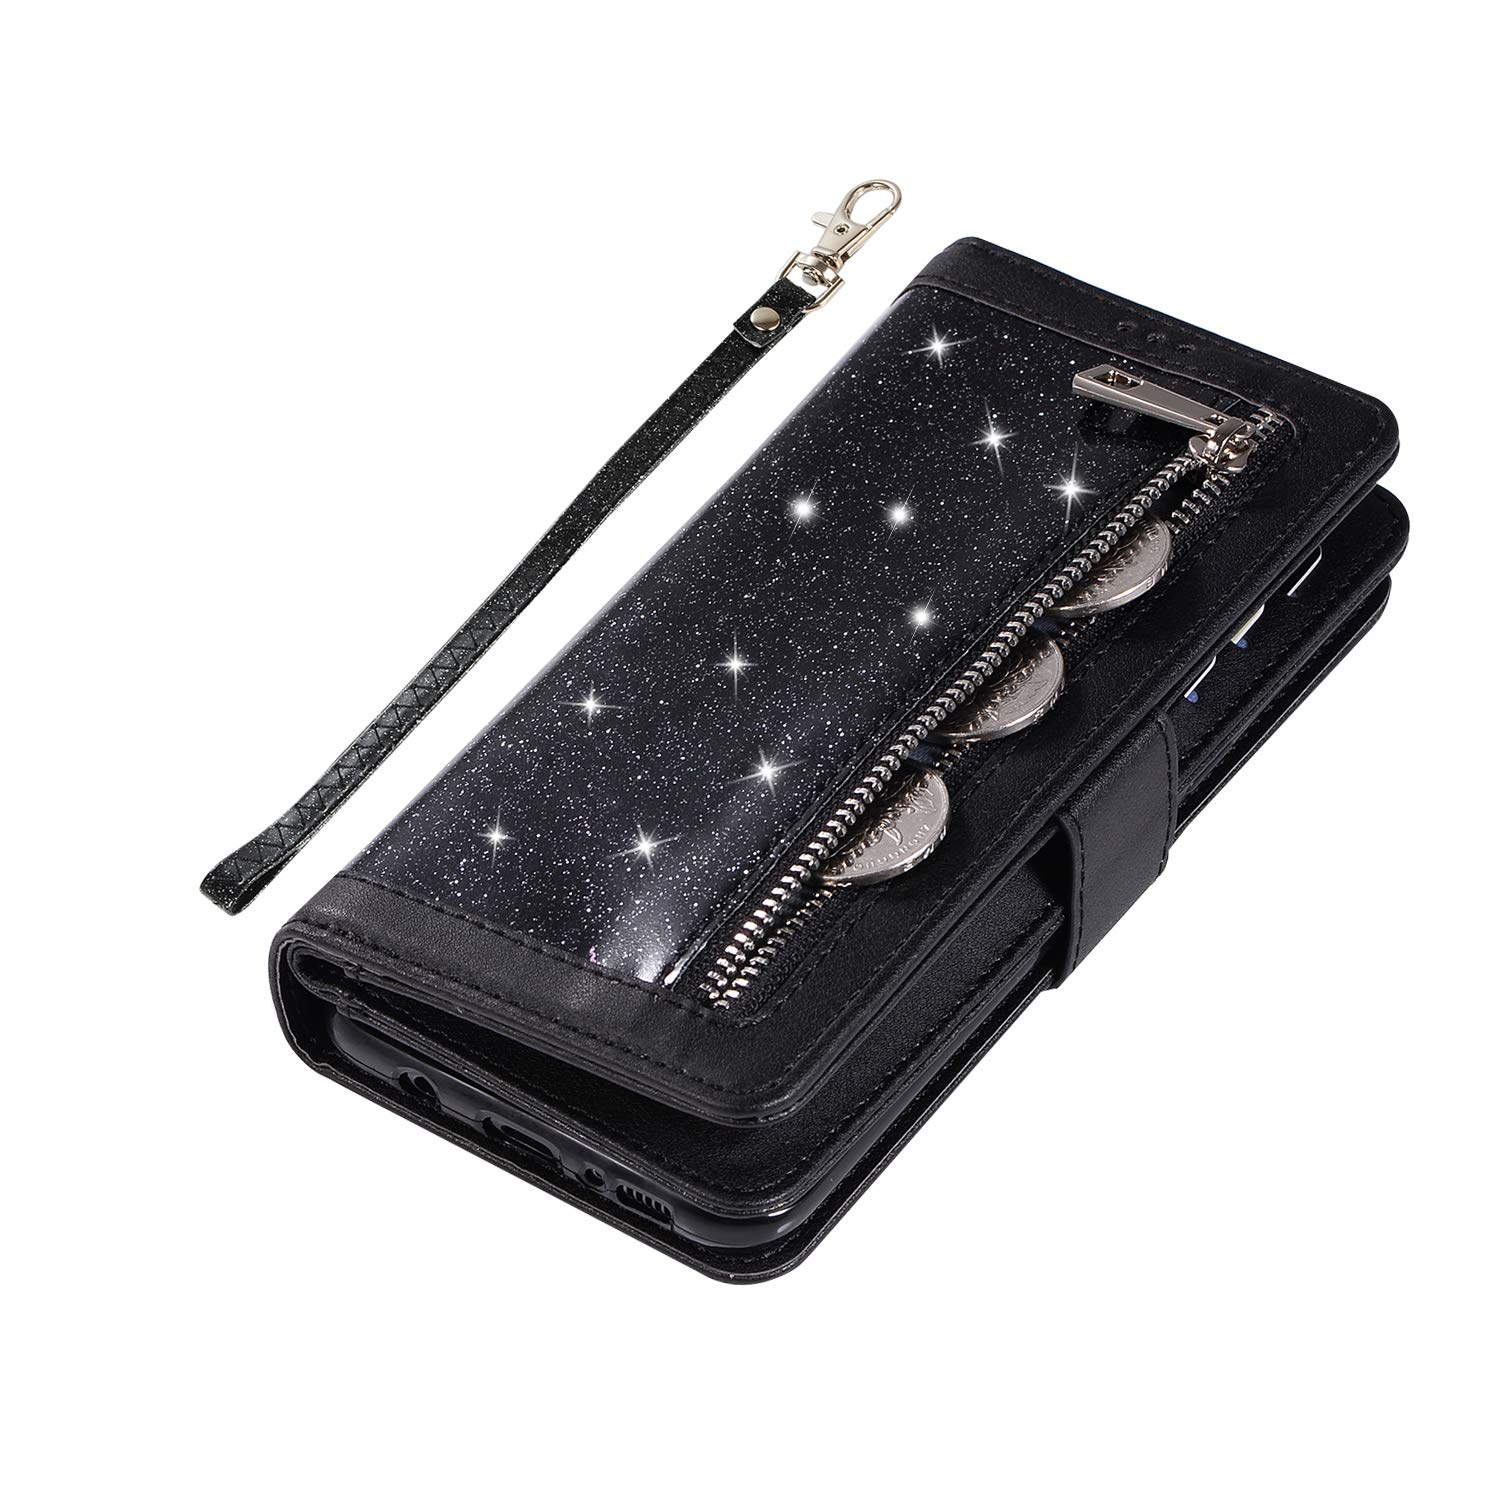 Shinyzone Glitter PU Case for Samsung Galaxy S8,Wallet Leather Flip Case with Zipper Pocket,Bling Cover with 9 Card Holder and Wrist Strap Magnetic Stand Function,Black by Shinyzone (Image #6)